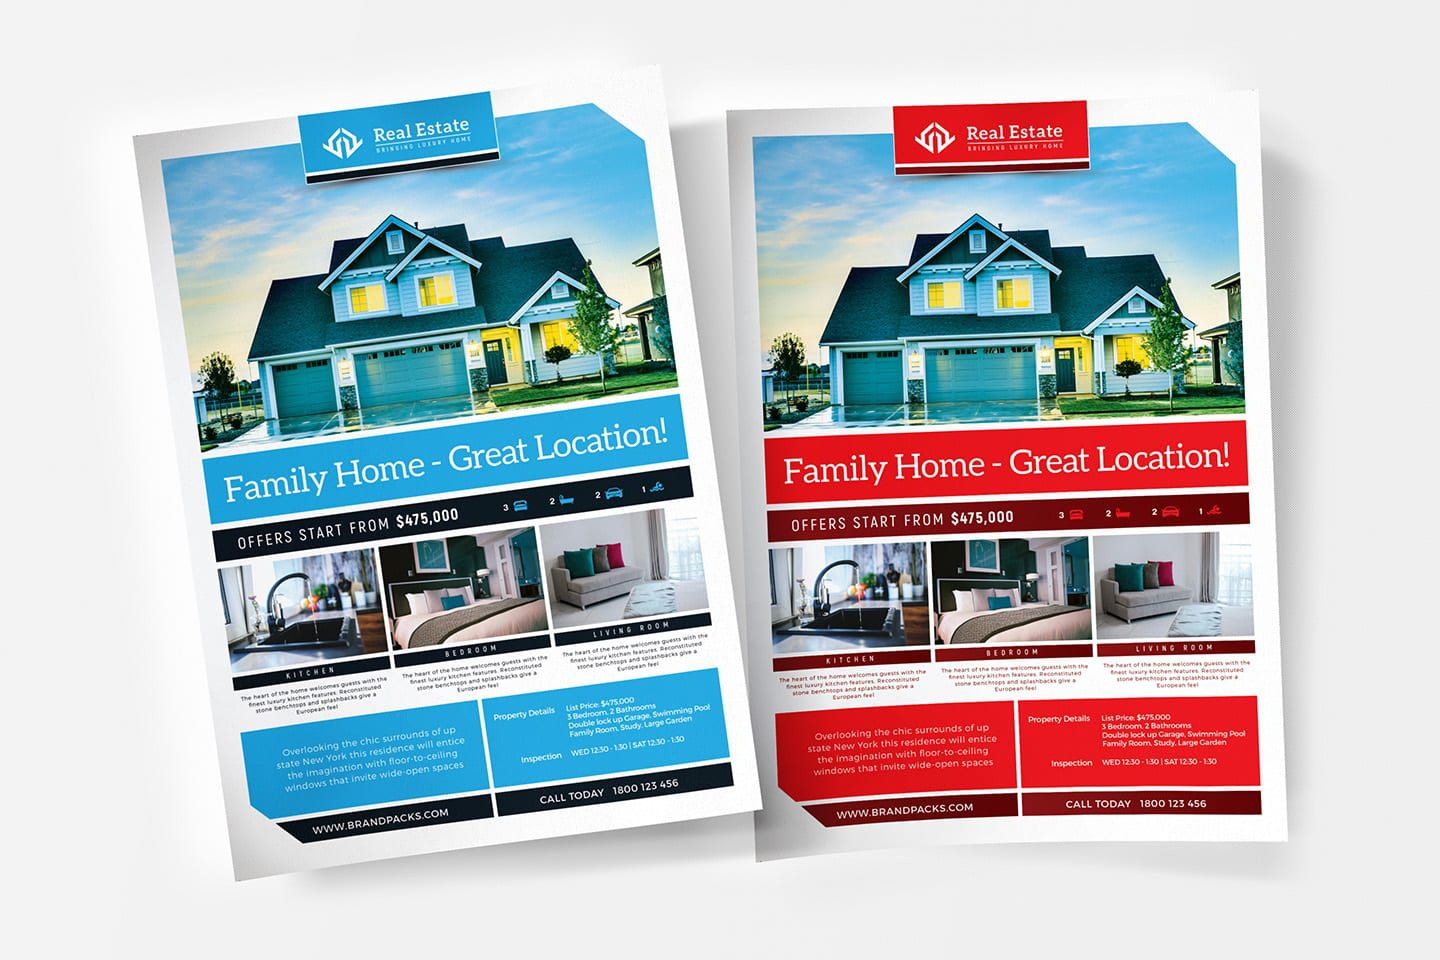 003 Wonderful Real Estate Flyer Template Free Inspiration  Publisher Commercial Pdf DownloadFull